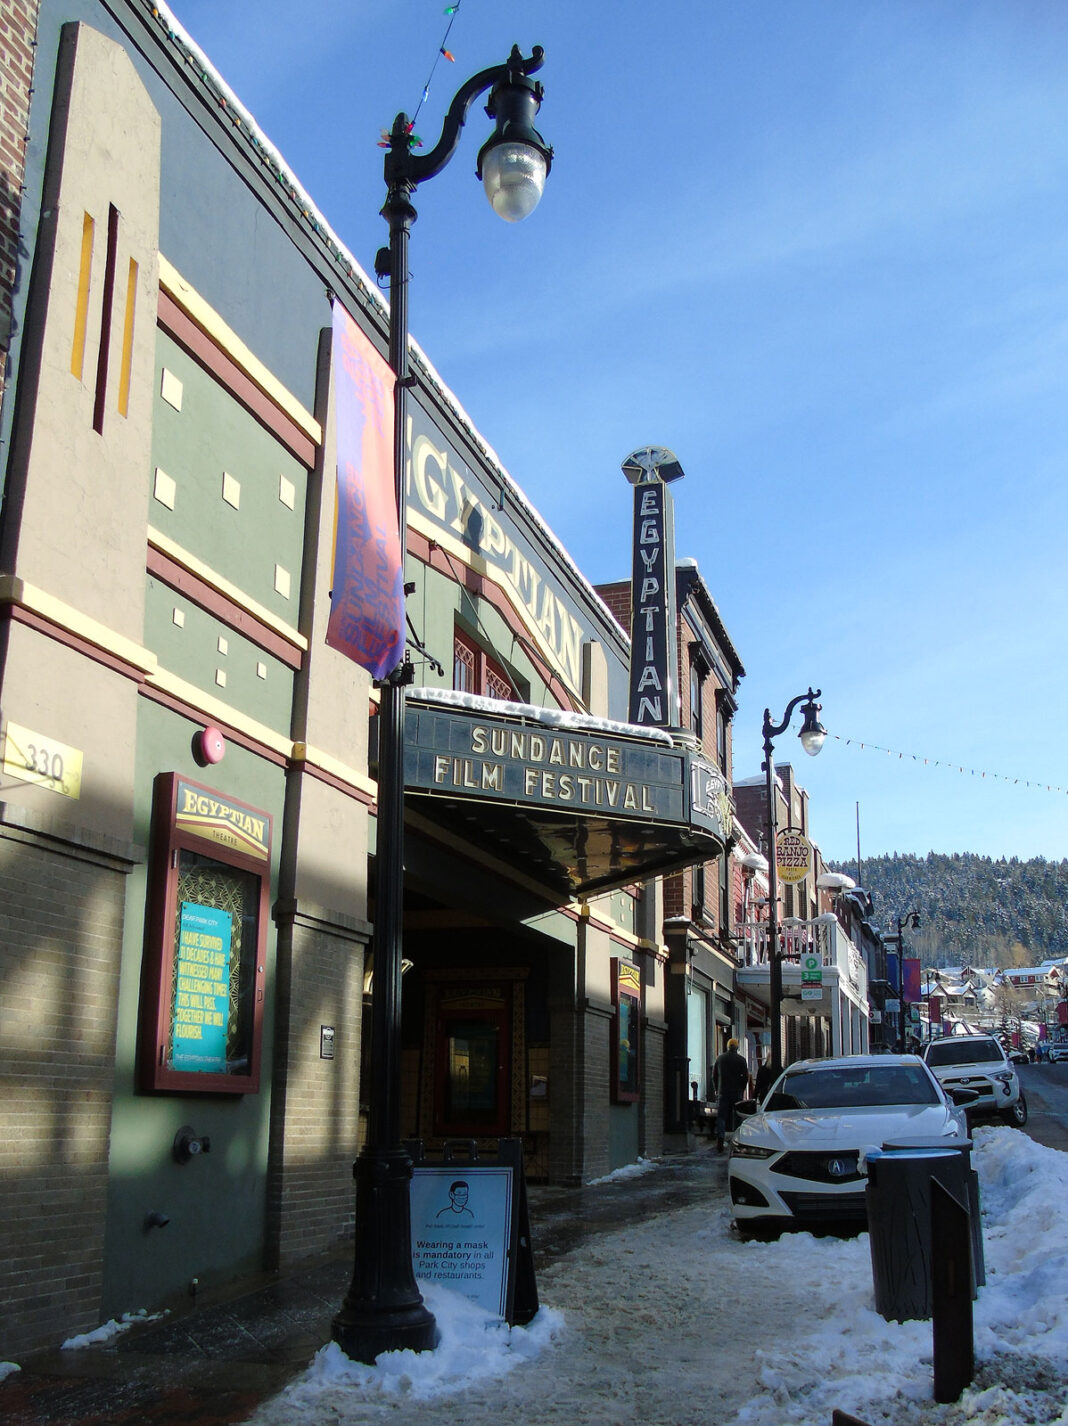 Sundance Film Festival marquee on Egyptian Theatre